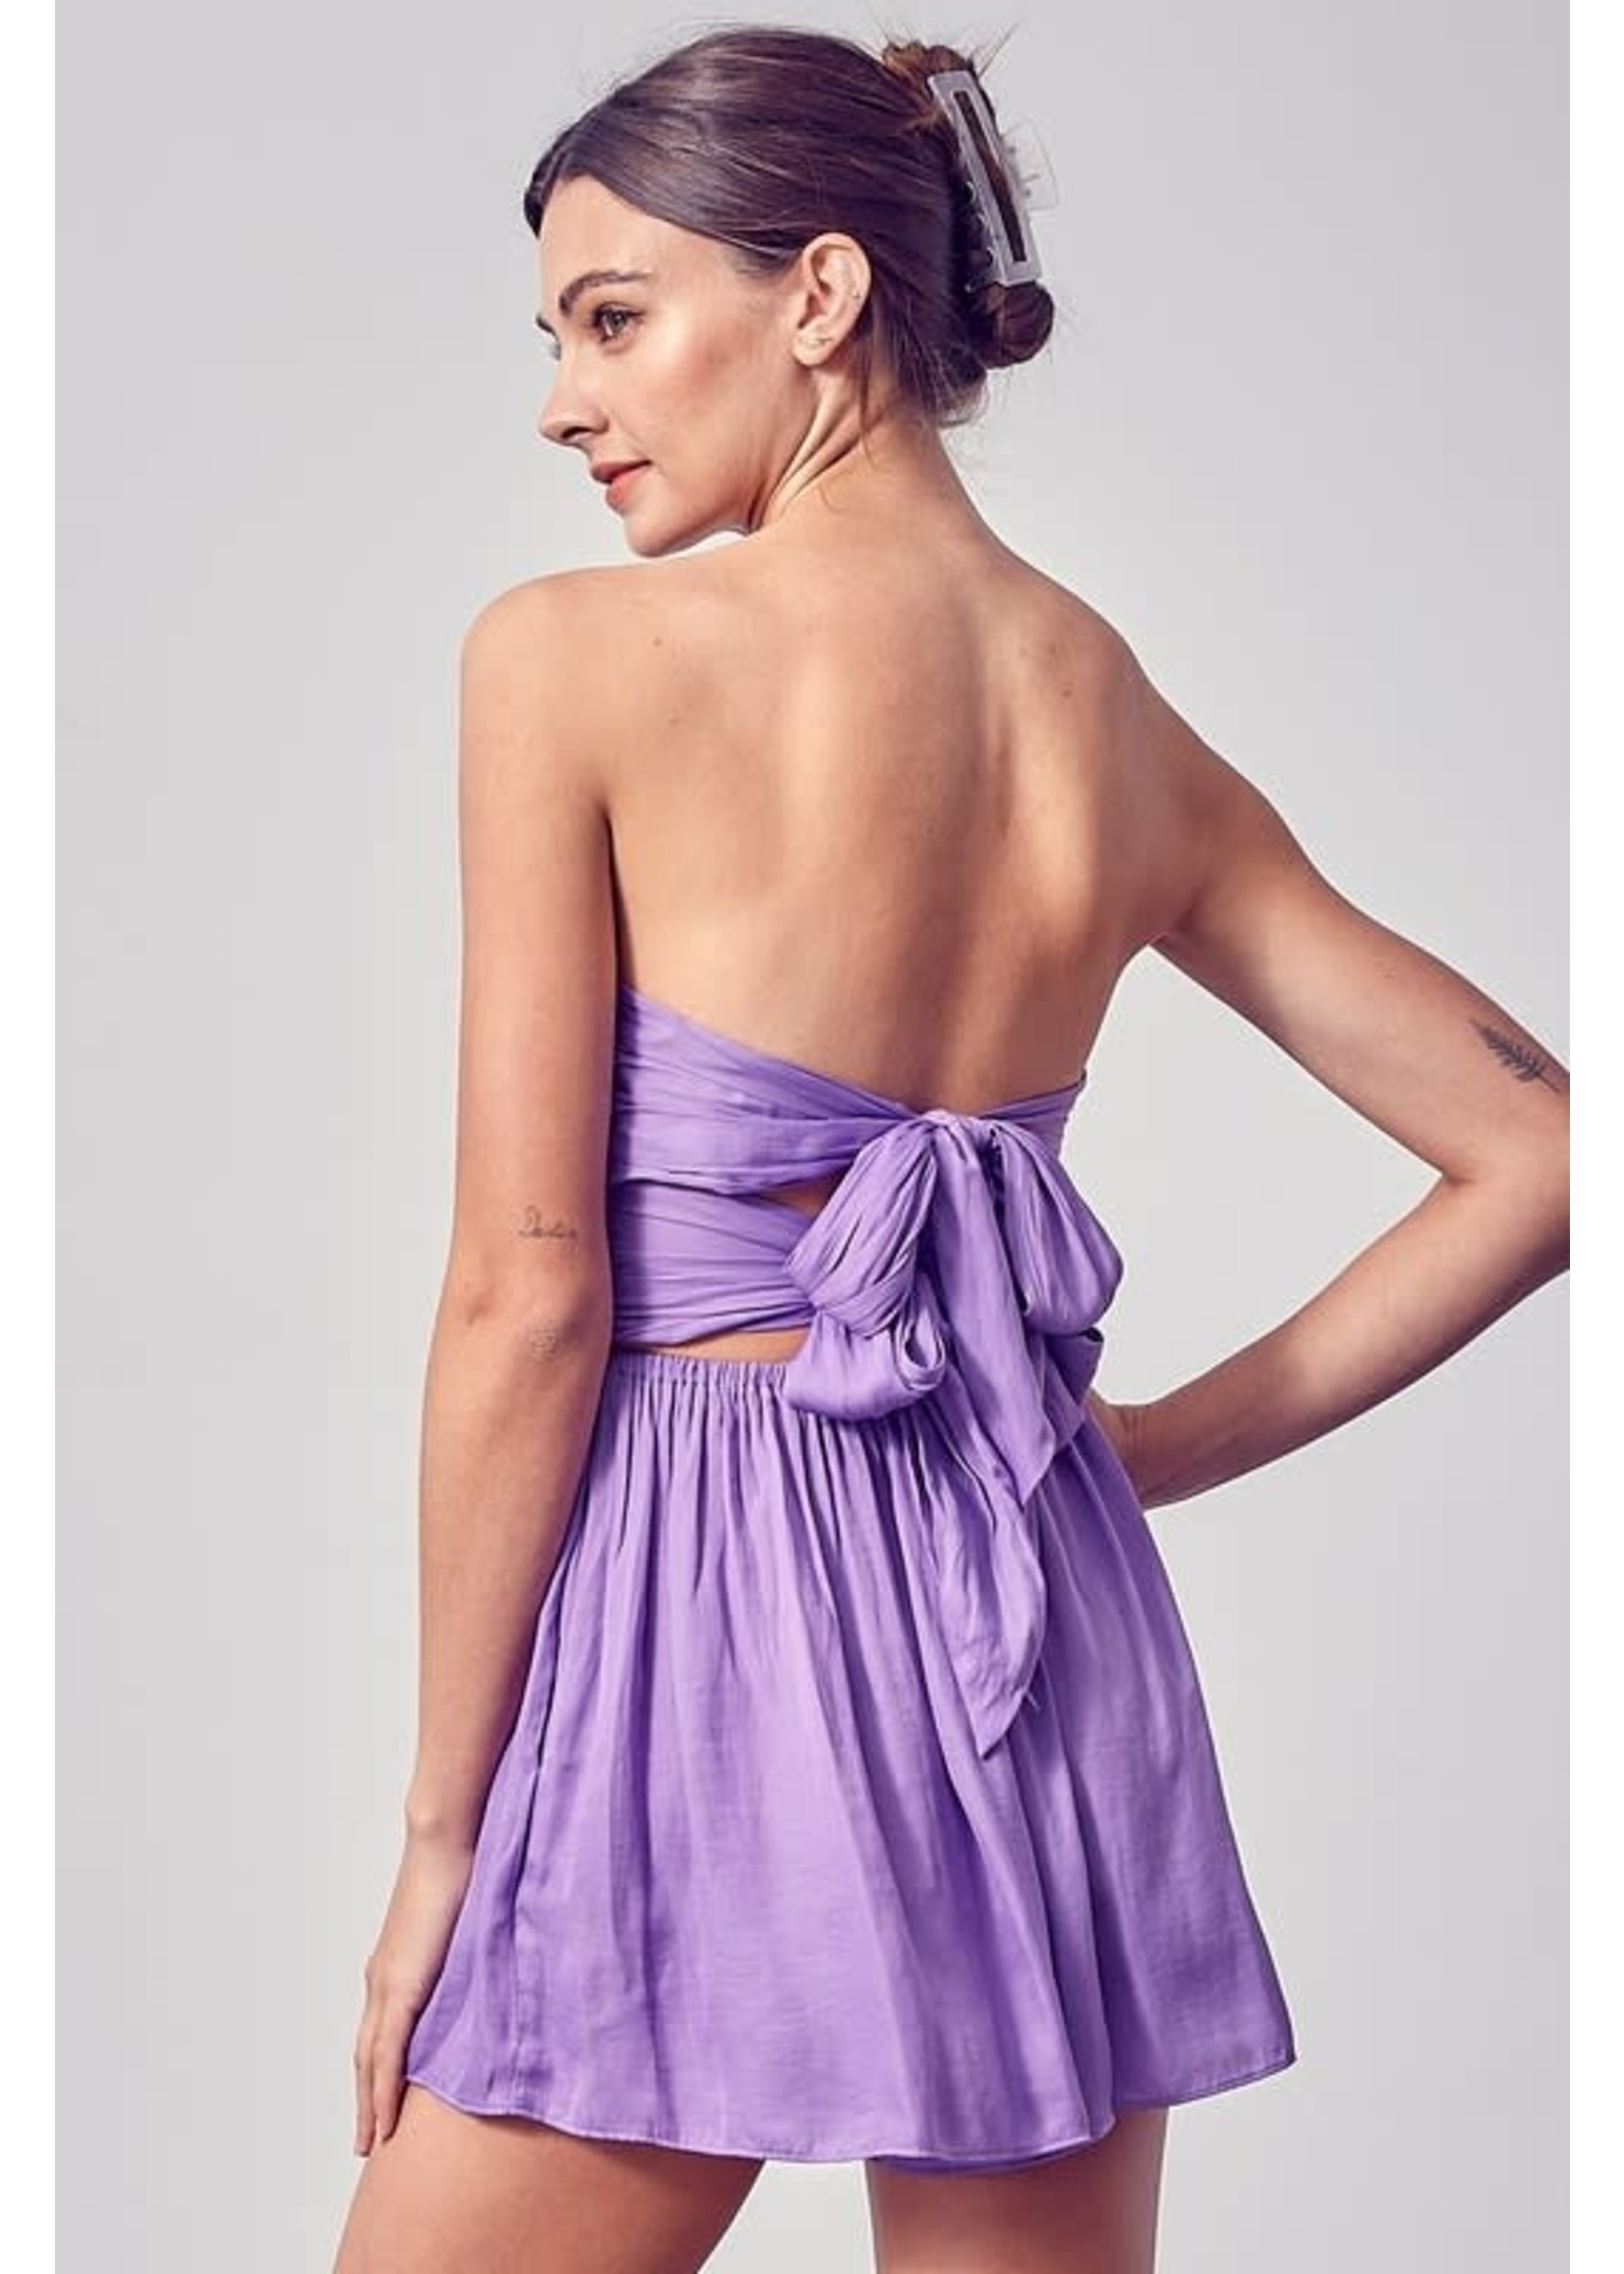 DO + BE Strapless Ruched Romper - Y20079